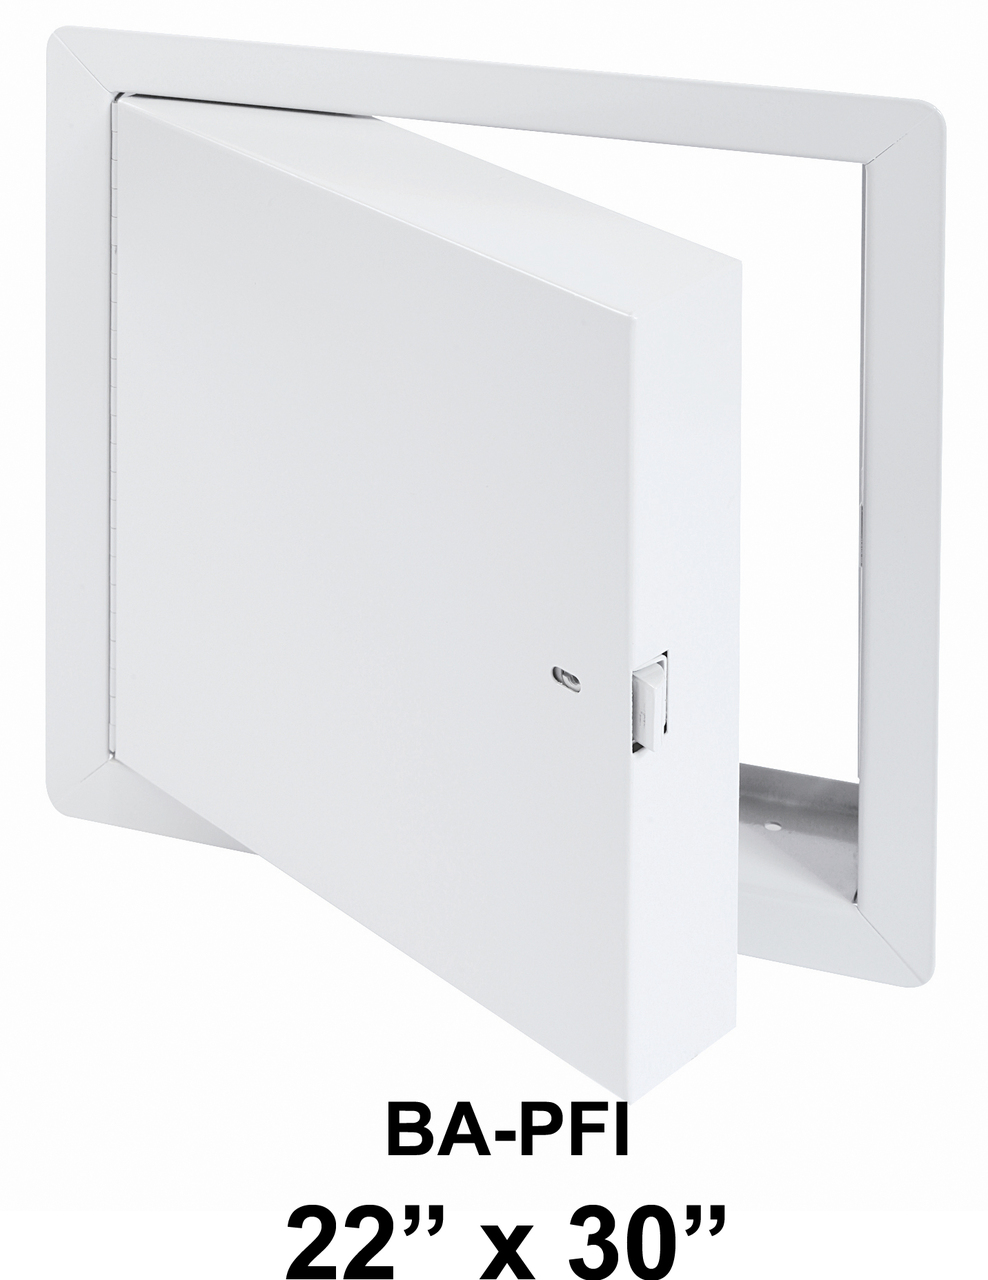 Best Access Doors Fire Rated BA-PFI 22 x 30 Insulated with Flange